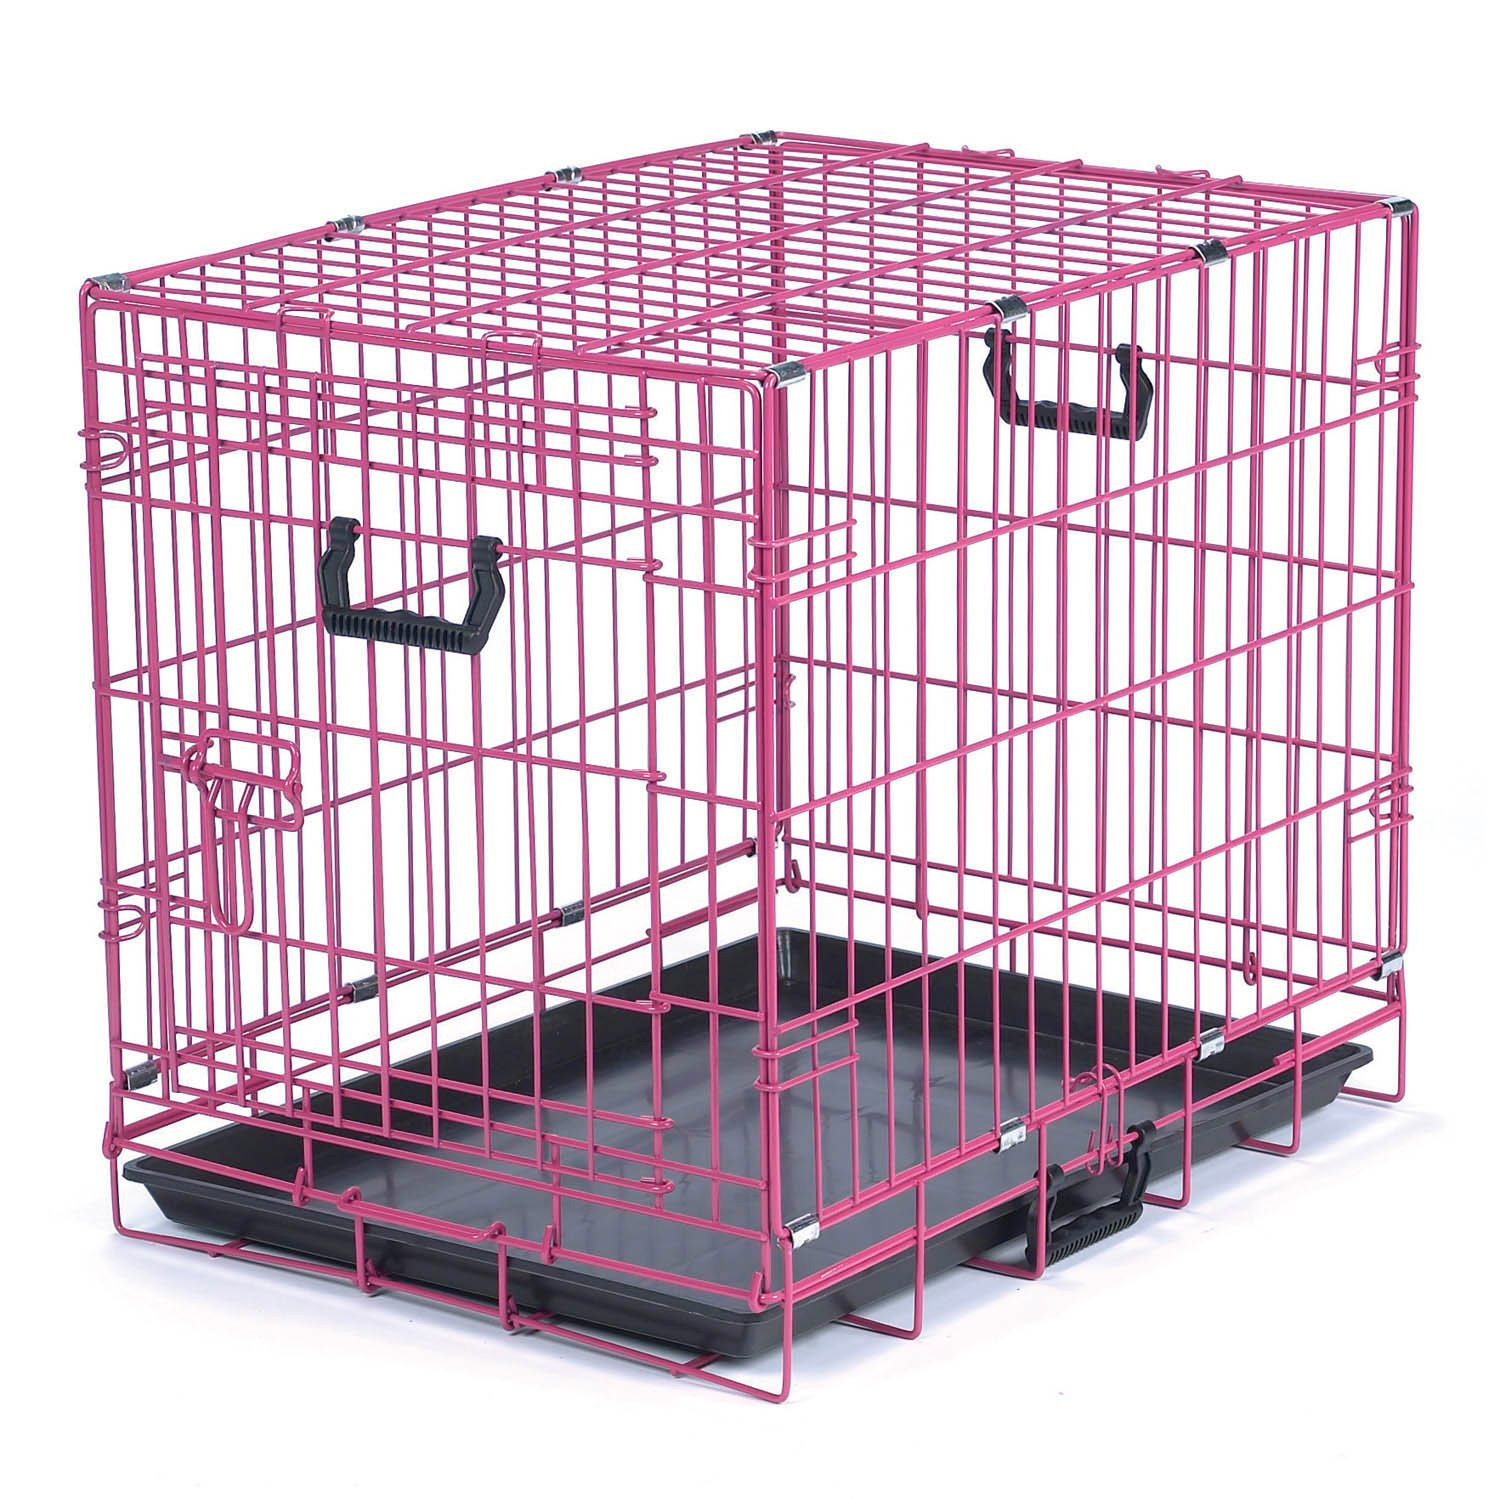 small dog crate - be good appeal color pink dog crate petco